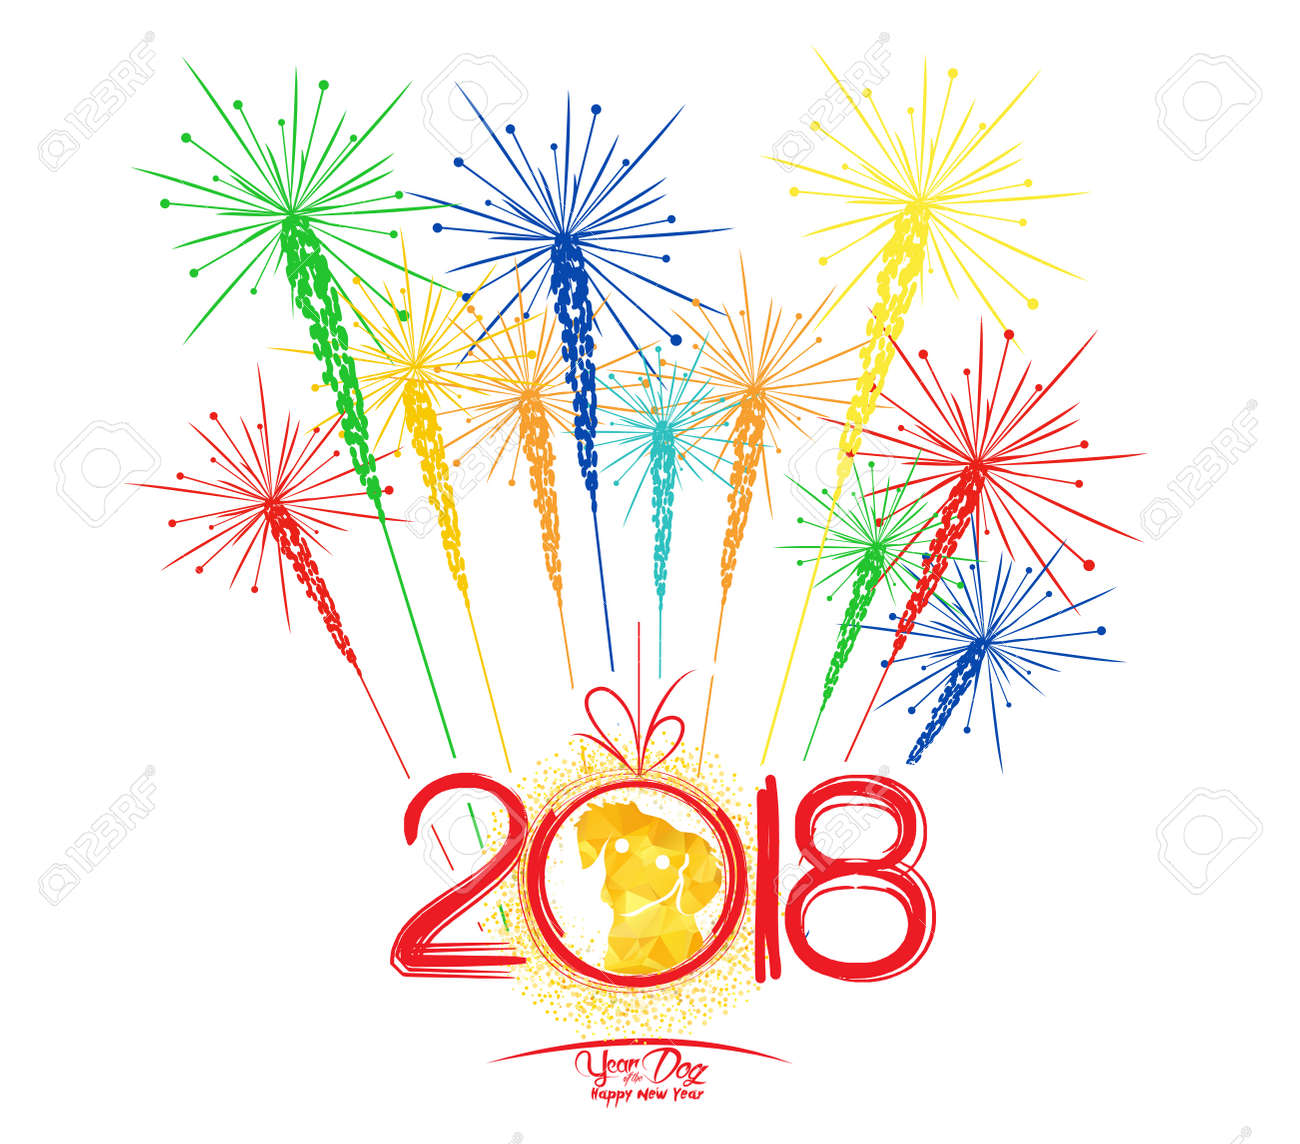 happy new year fireworks 2018 holiday background design year of the dog stock vector